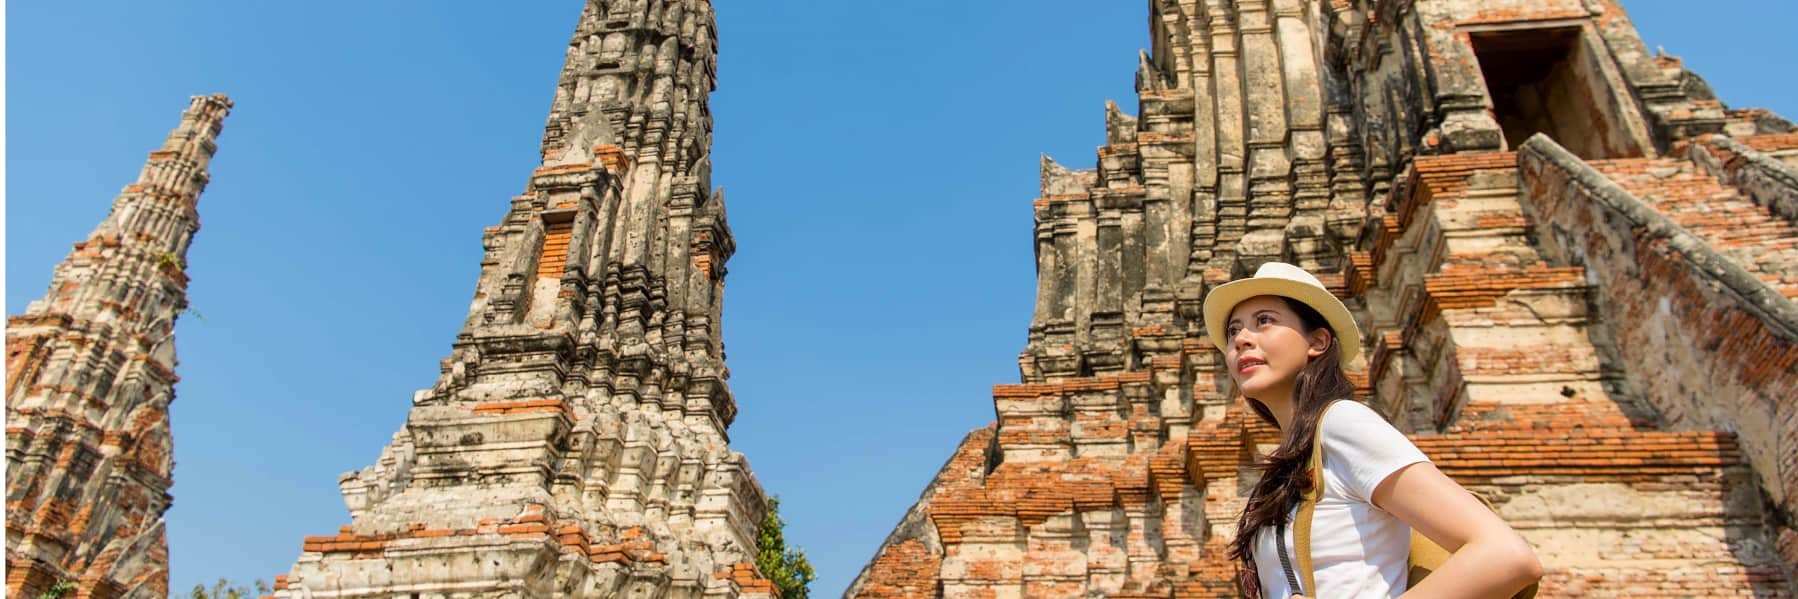 Ayutthaya Historical Park Small Group Tour – Full Day gallery